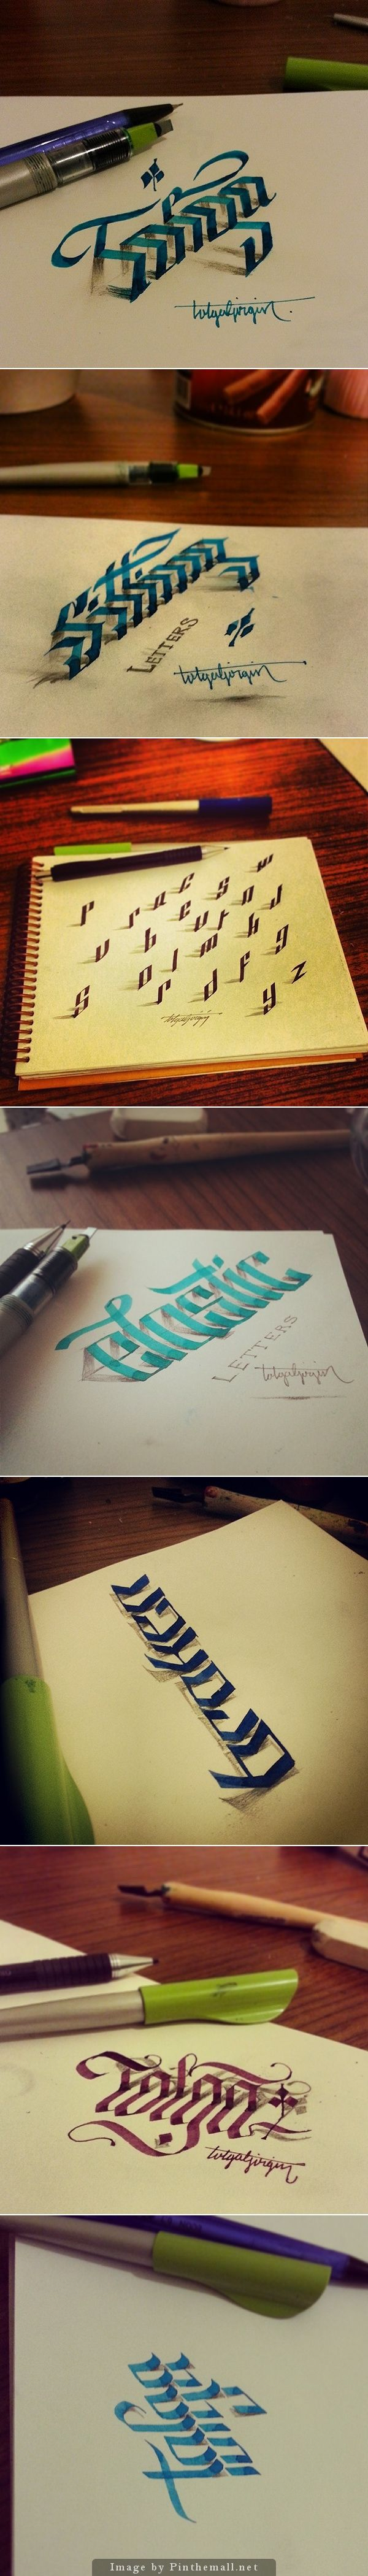 BY HAND / FORM / 3D type by Tolga --- Howwwwww?? I wish I'd known how to do this while u was in graphic arts class